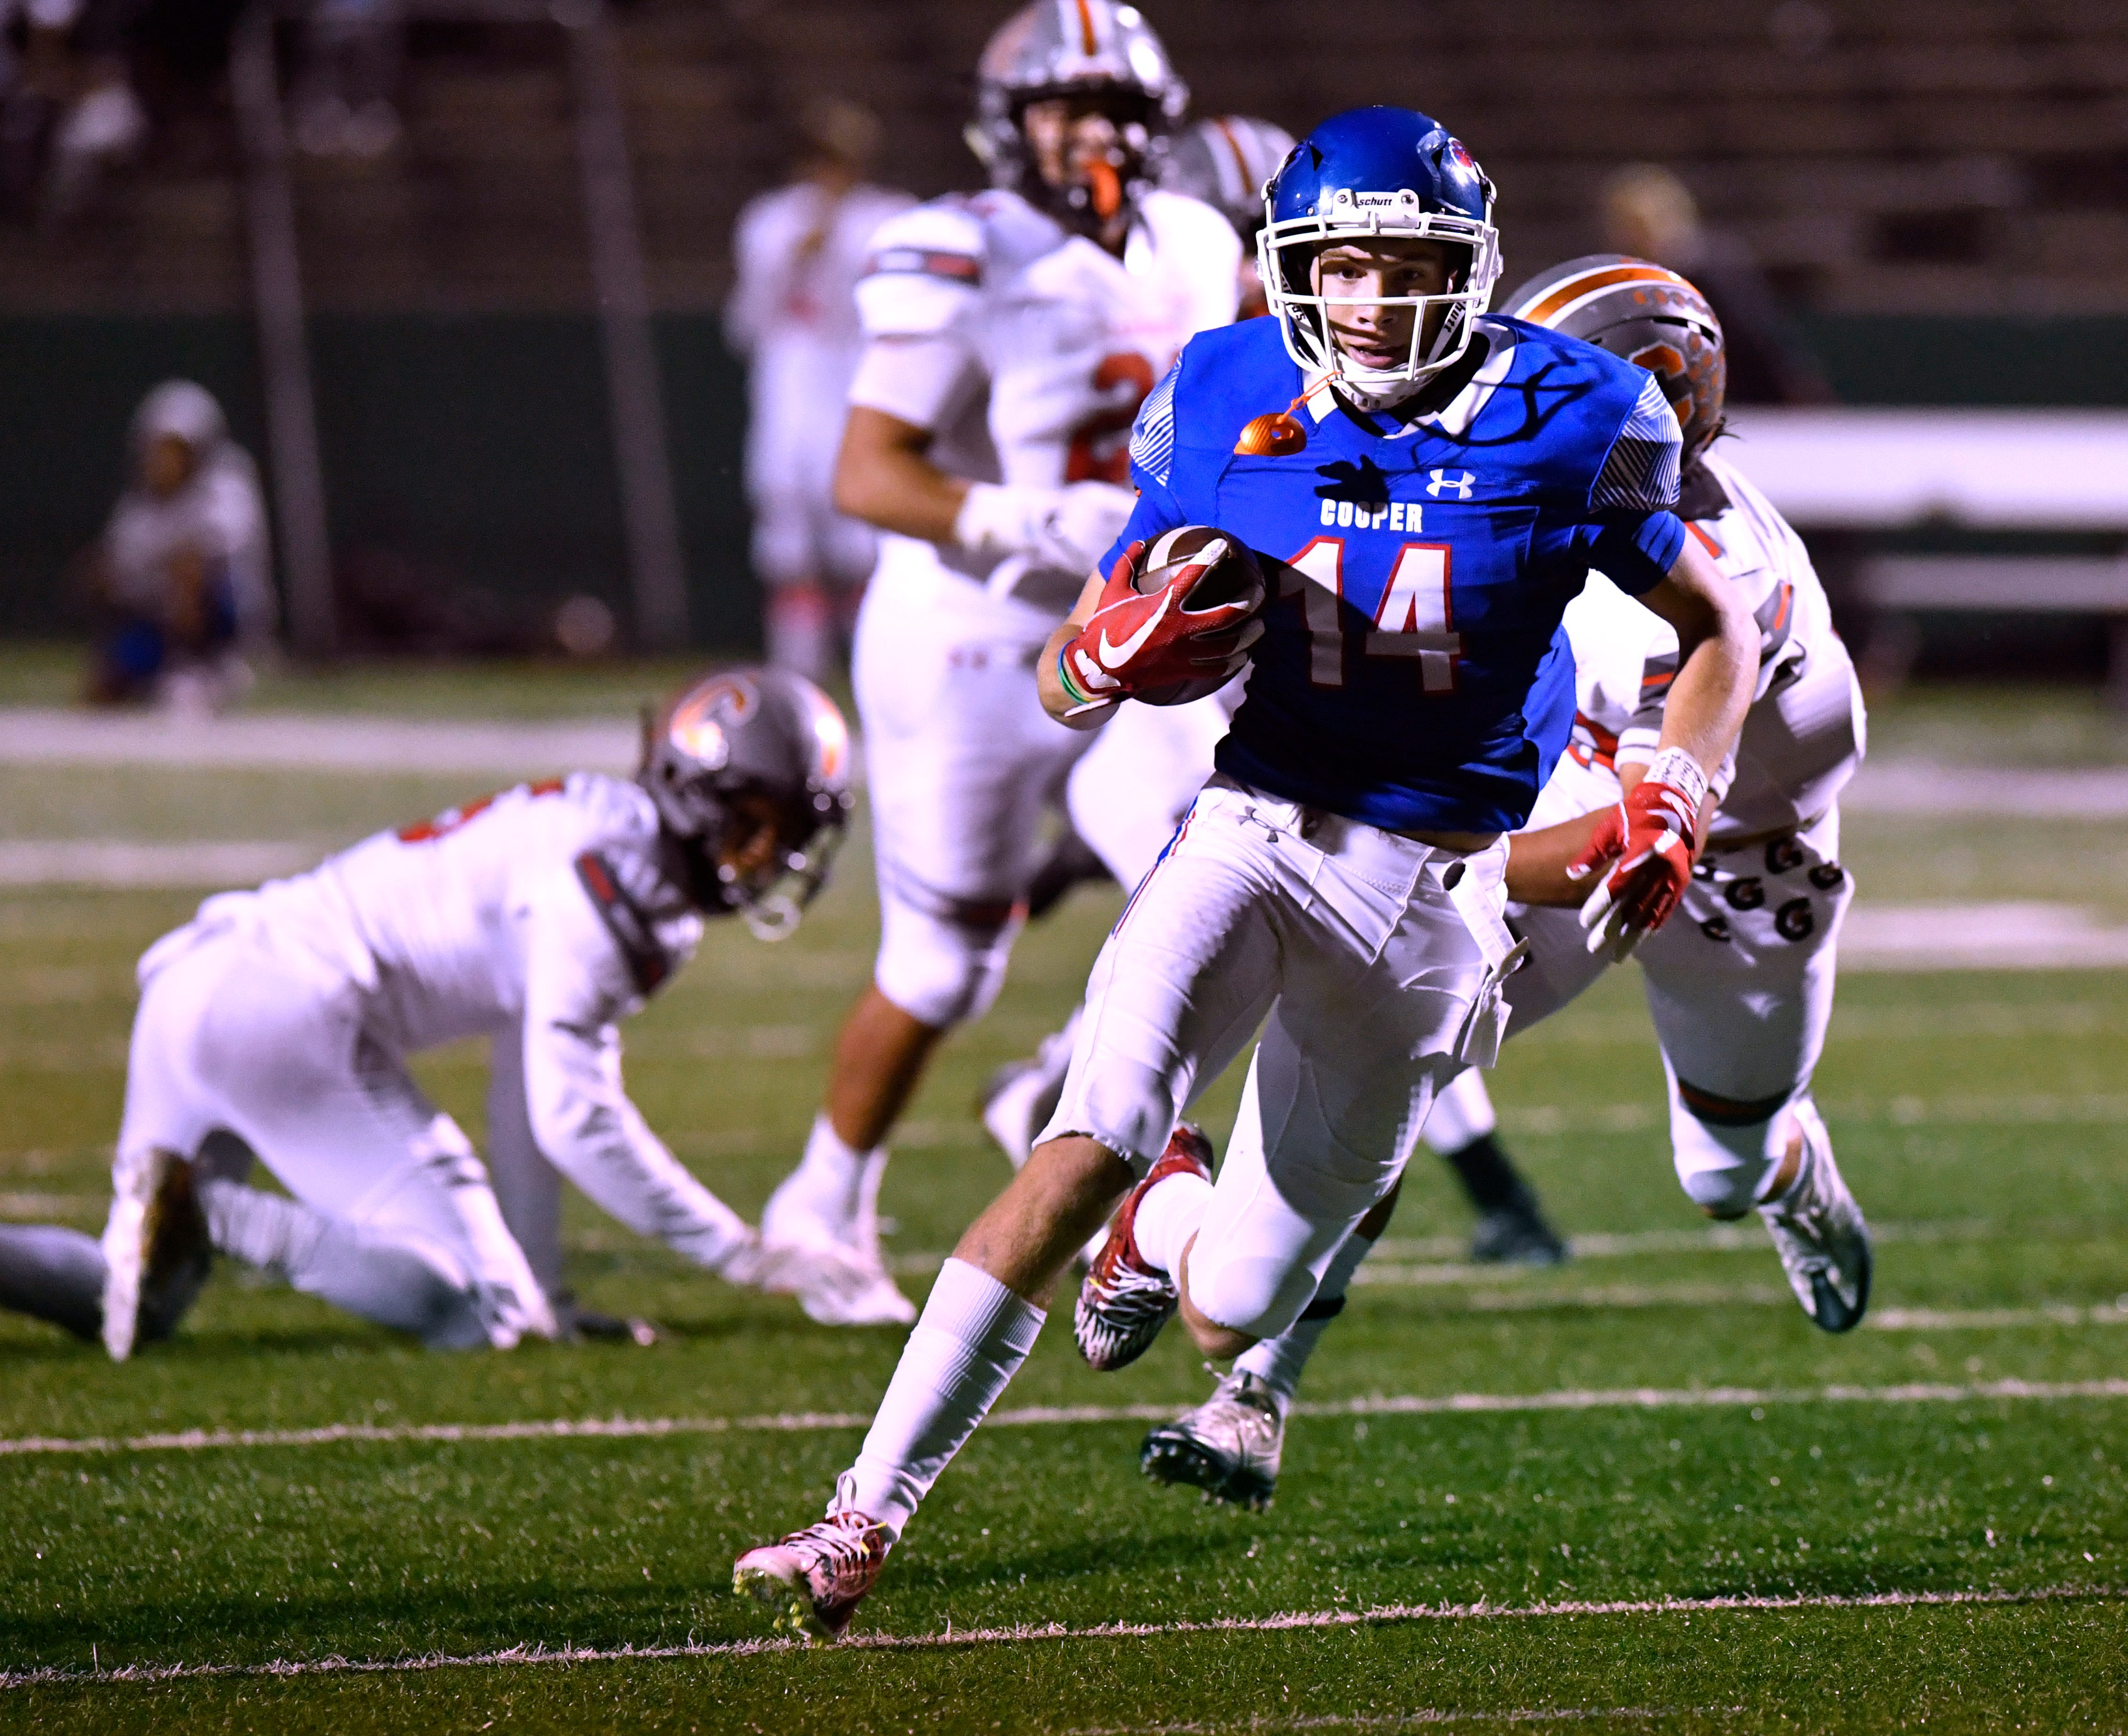 Cooper High wide receiver Mason Reynolds carries the ball during Friday's game against Caprock High Oct. 19, 2018. Final score was 28-12, Cooper.